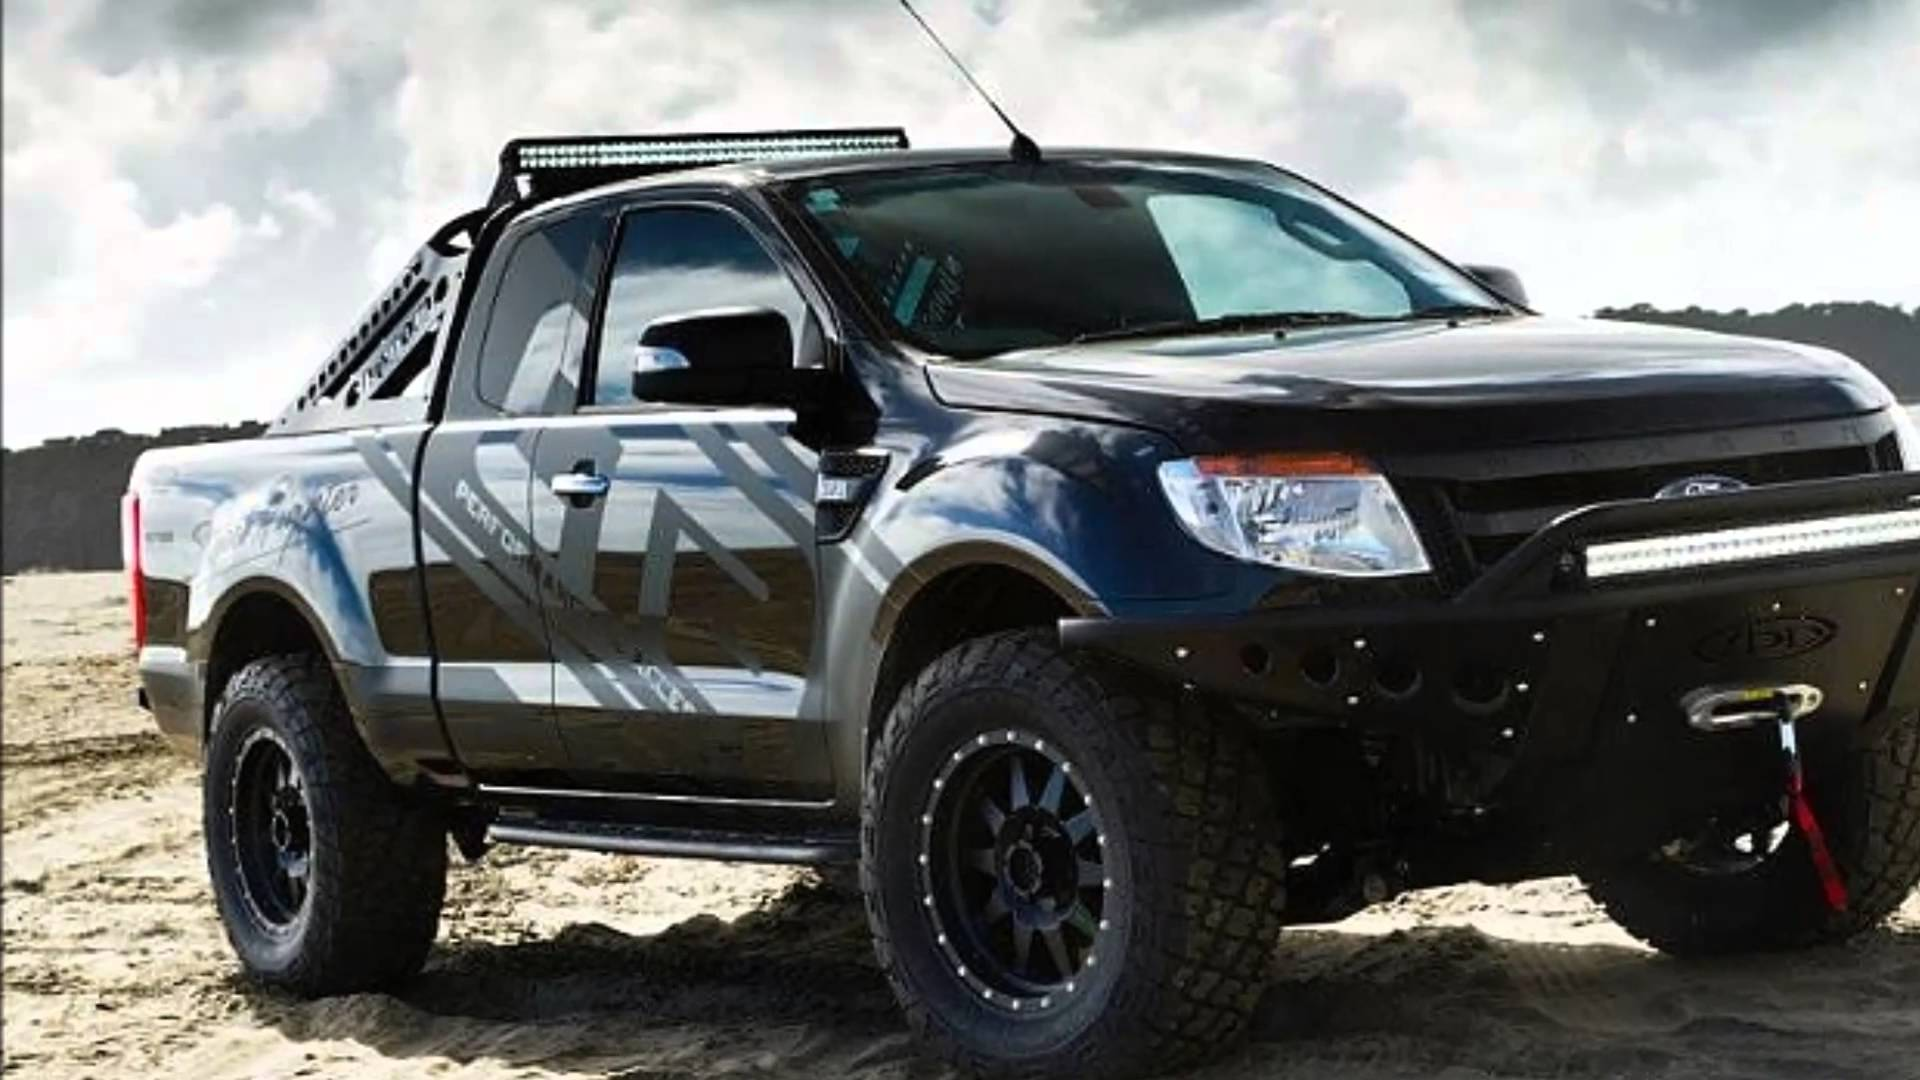 Ford Ranger 2018 FREE Pictures on GreePX